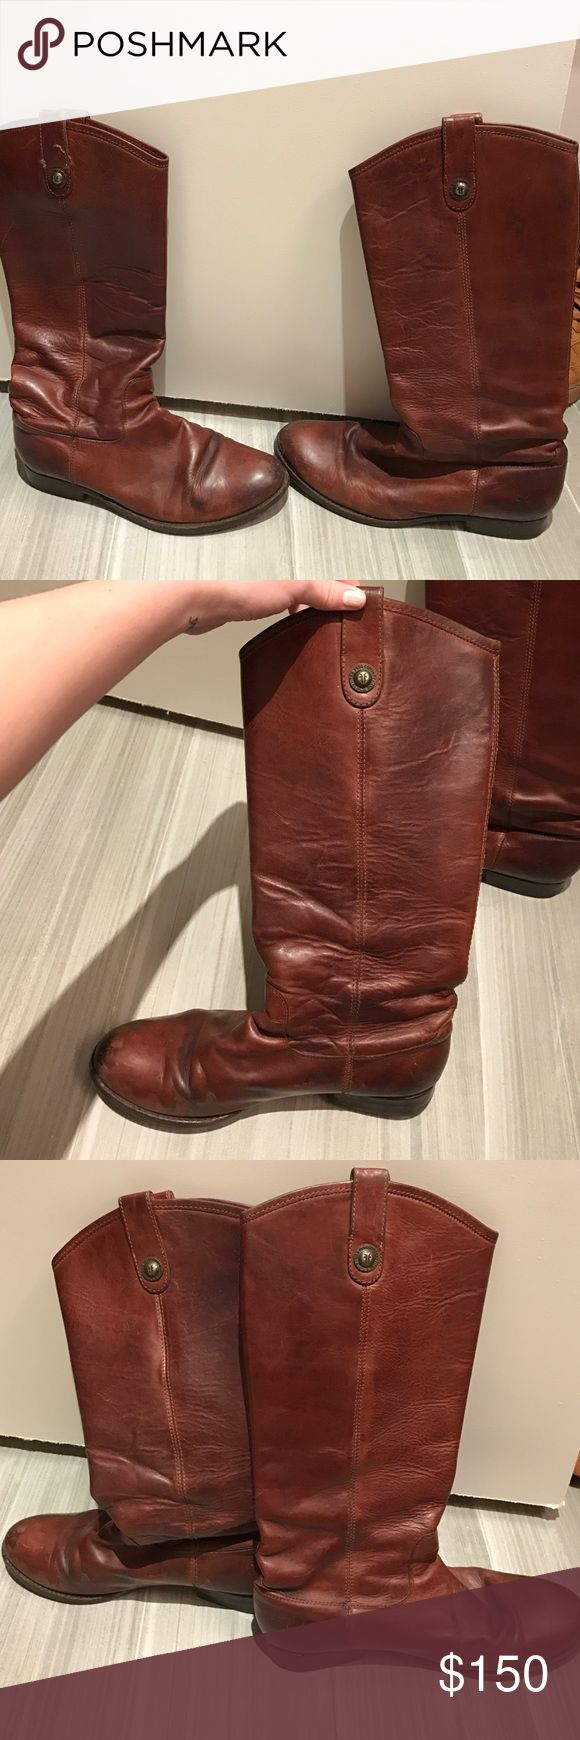 Frye Melissa Boot in Cognac Size 9, Worn in cognac Frye Melissa boot. Had them resoled a few years ago. Can send close up shots for those who would like them! Frye Shoes Heeled Boots